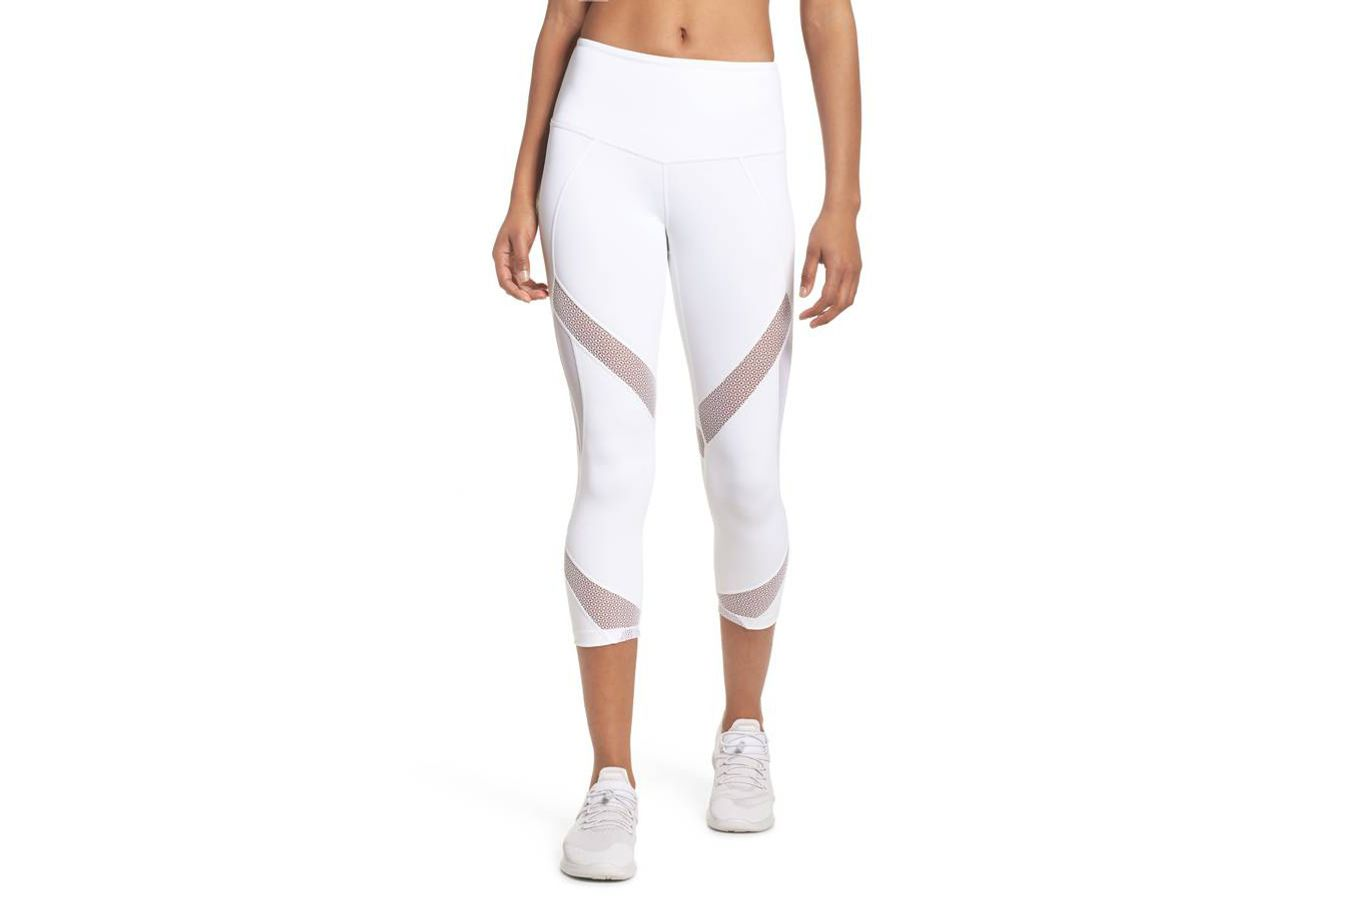 3c9d11101a6d7 14 Best Workout Leggings 2018